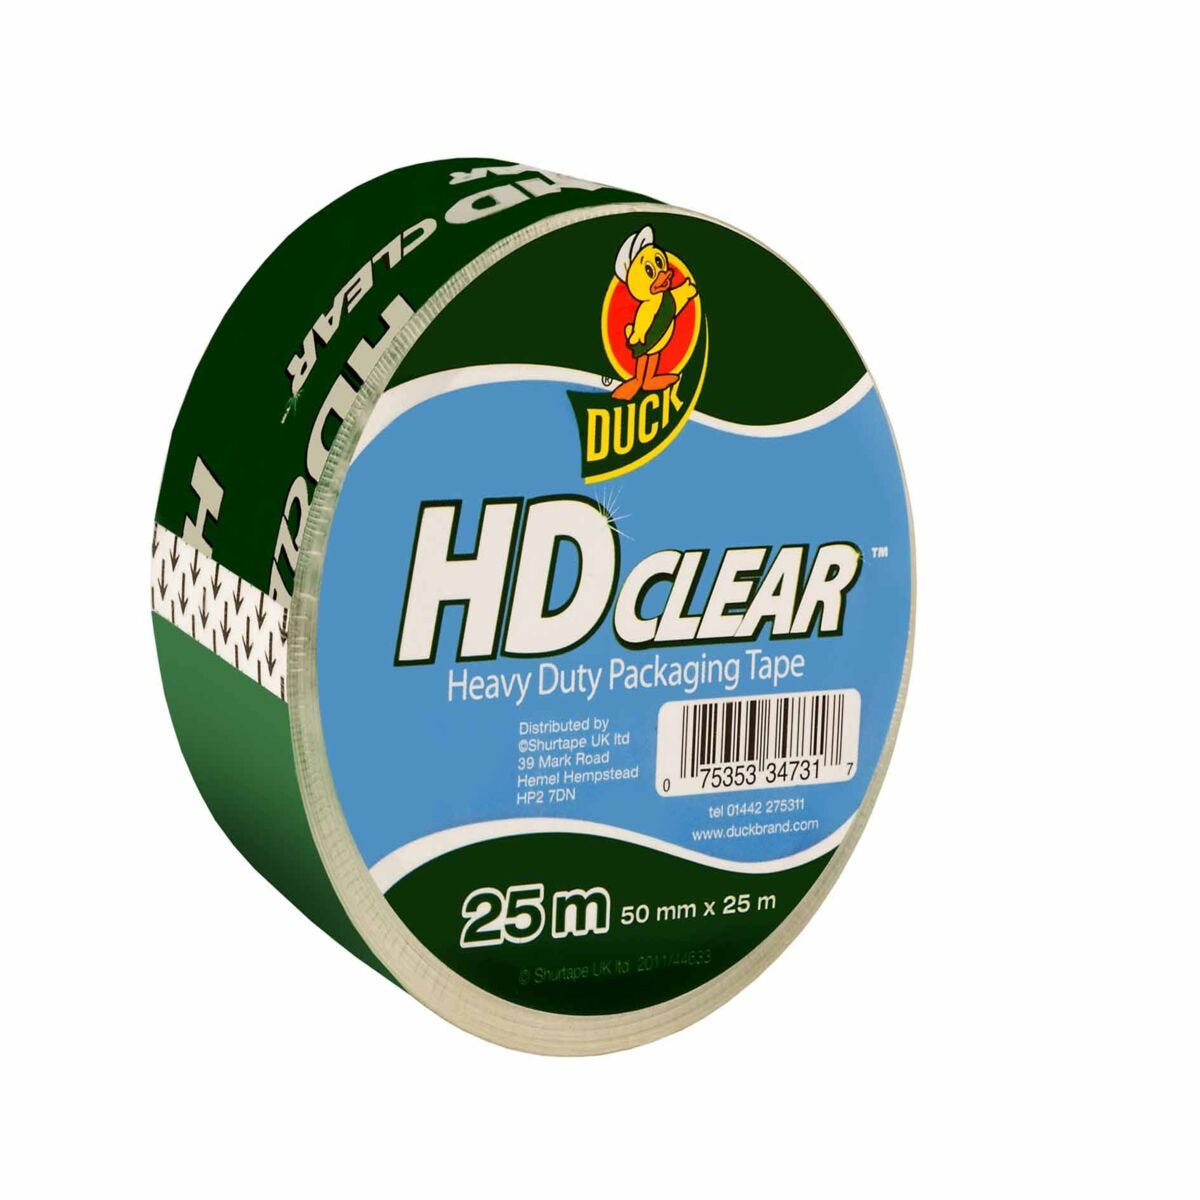 Duck Heavy Duty Packaging Tape 50mmx25mm Clear